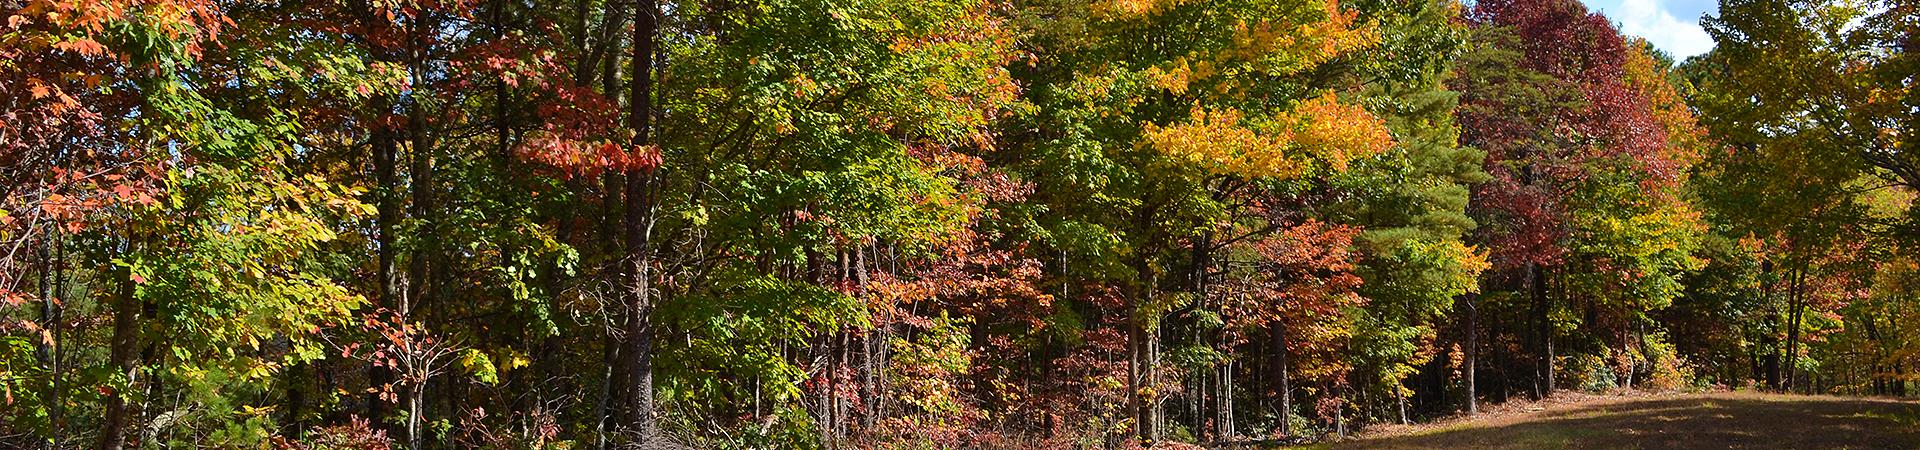 line of trees at Warwoman Wildlife Management Area